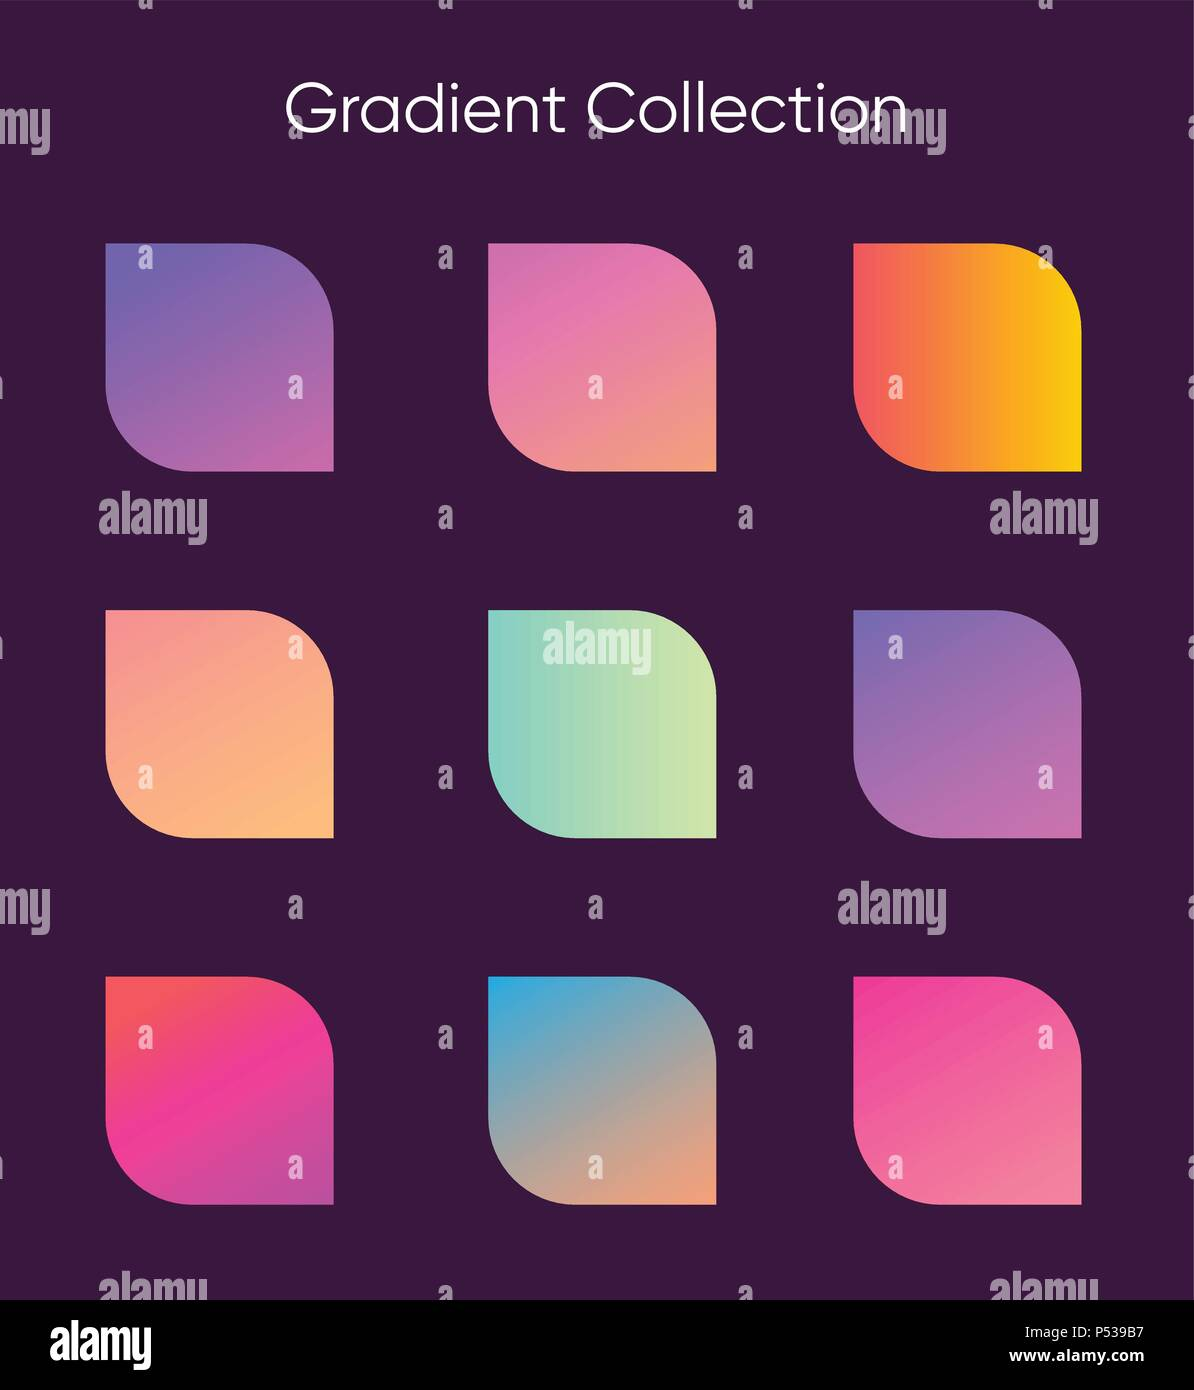 Gradient sample set. Colorful gradients for poster, banner, flyer and presentation. Trendy soft color. Template for screens and mobile app - Stock Image